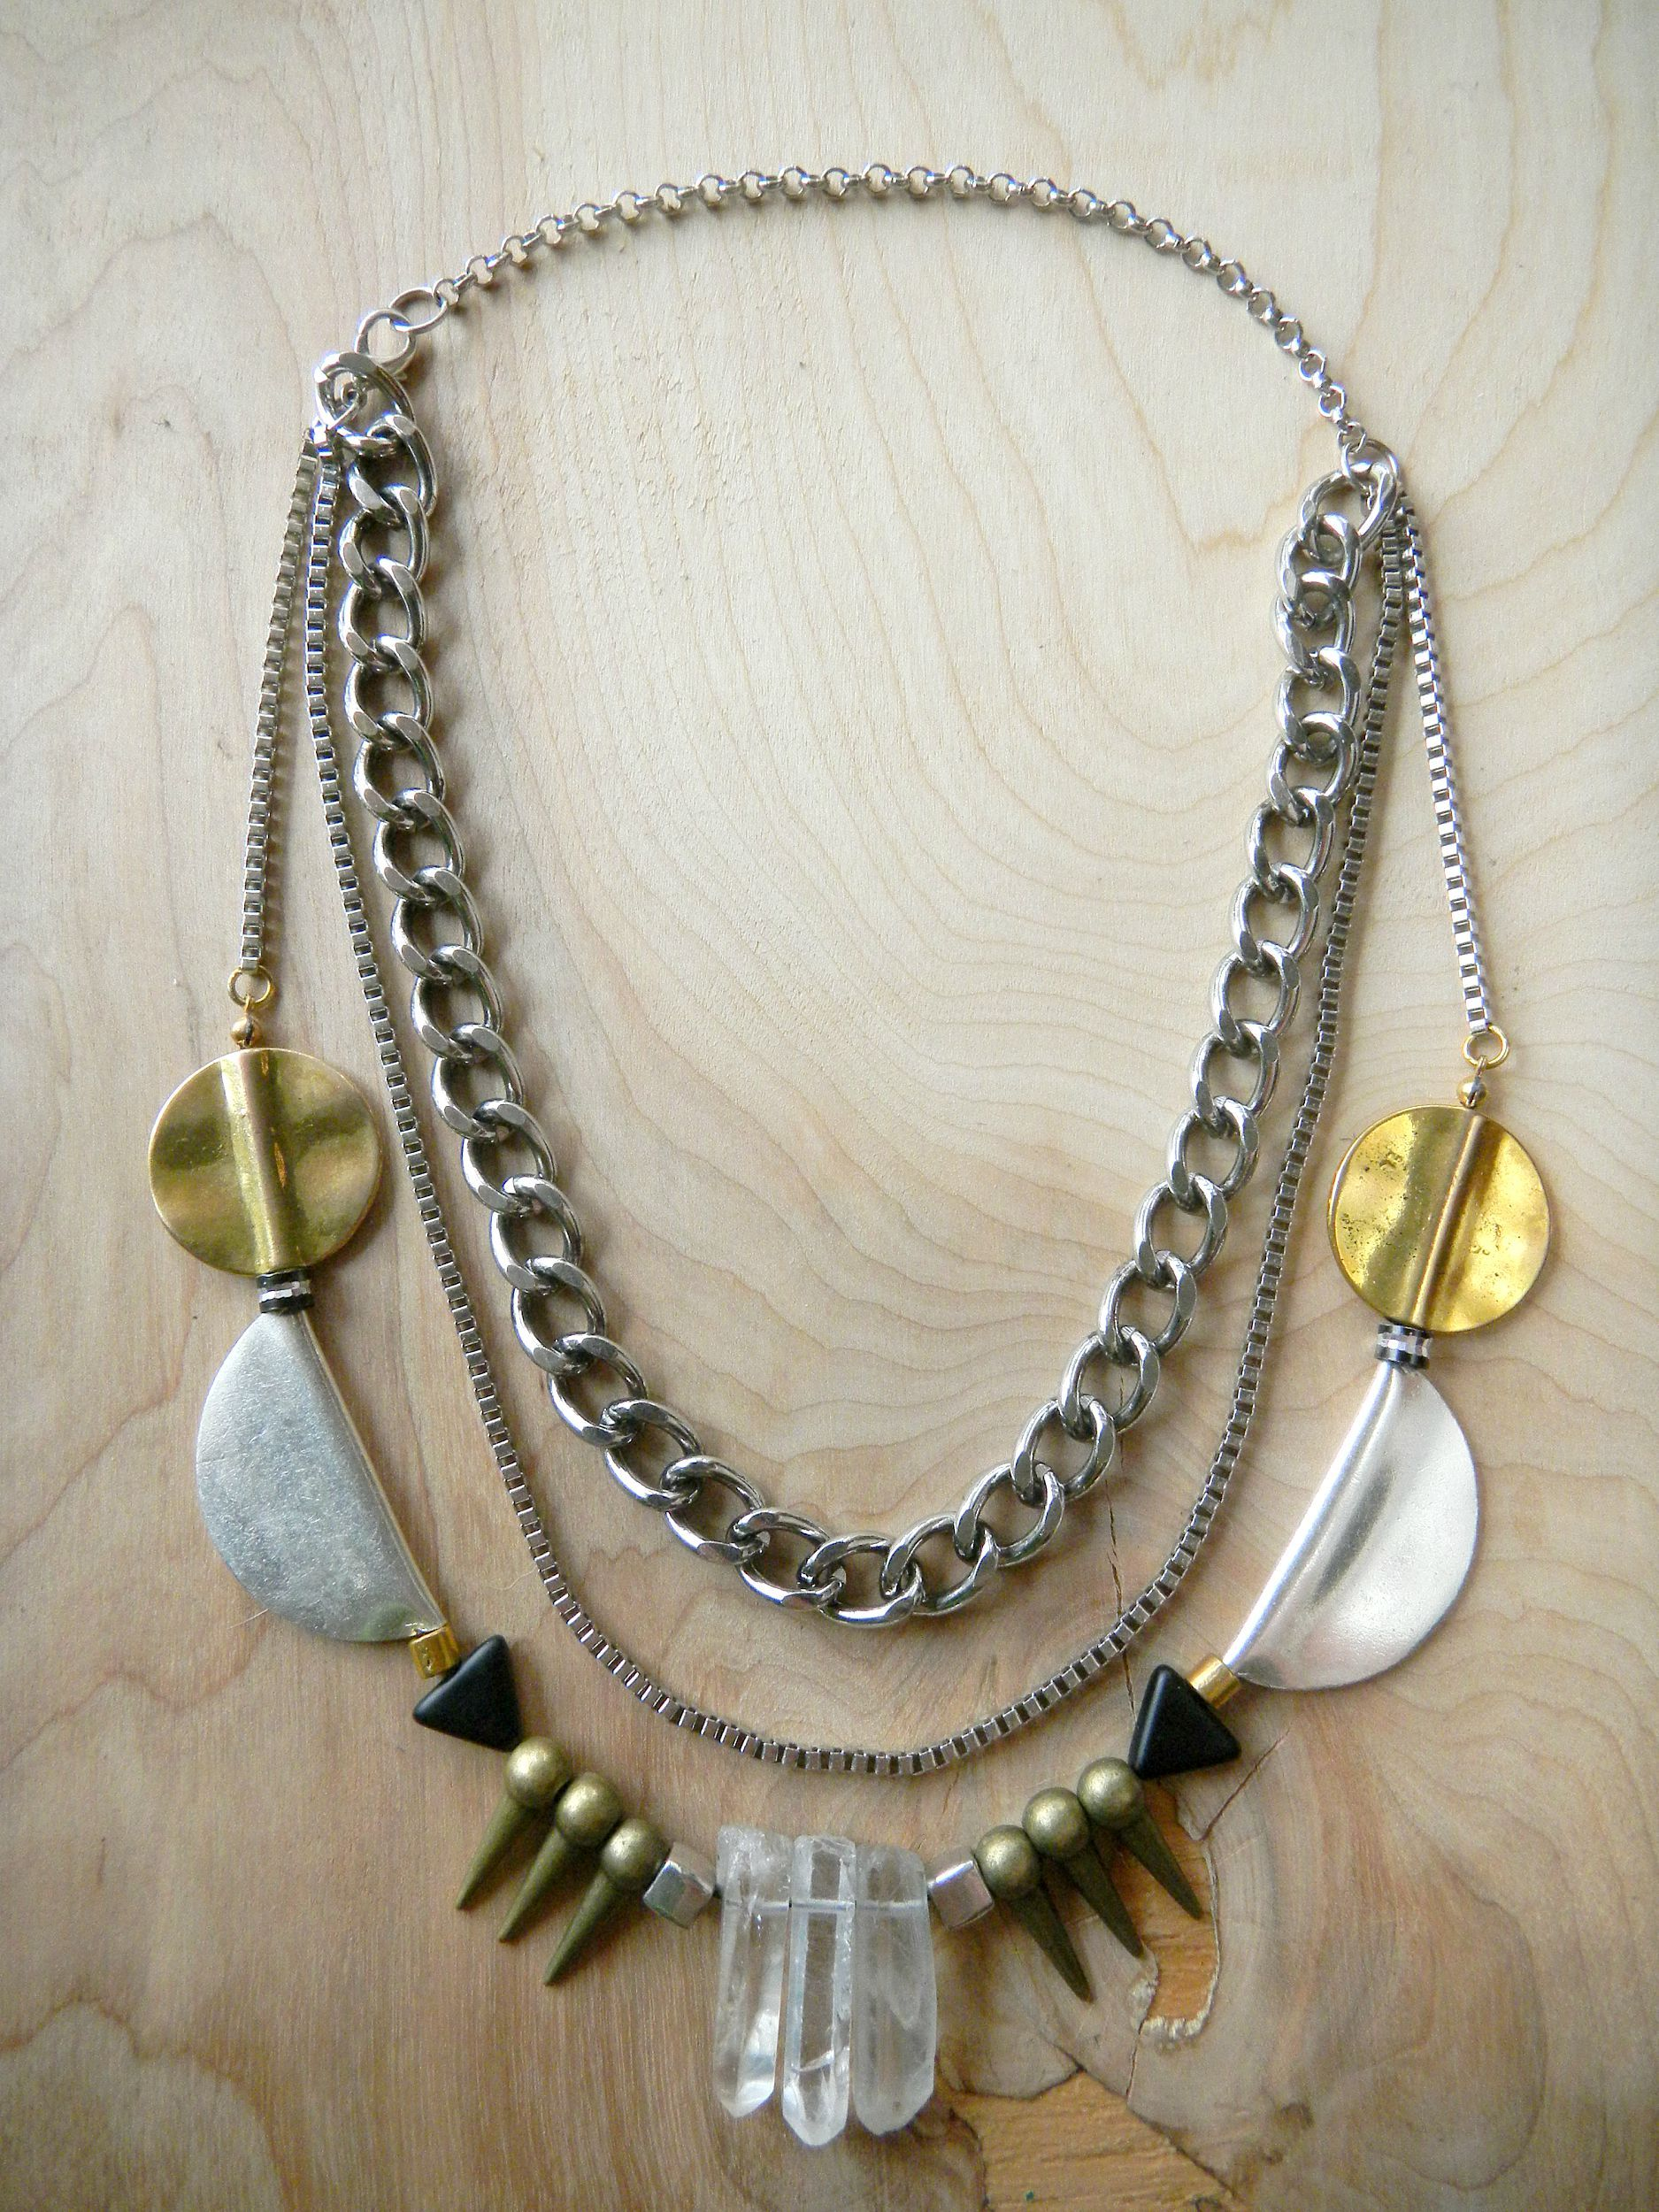 Party rocked rocker metal statement party necklace from